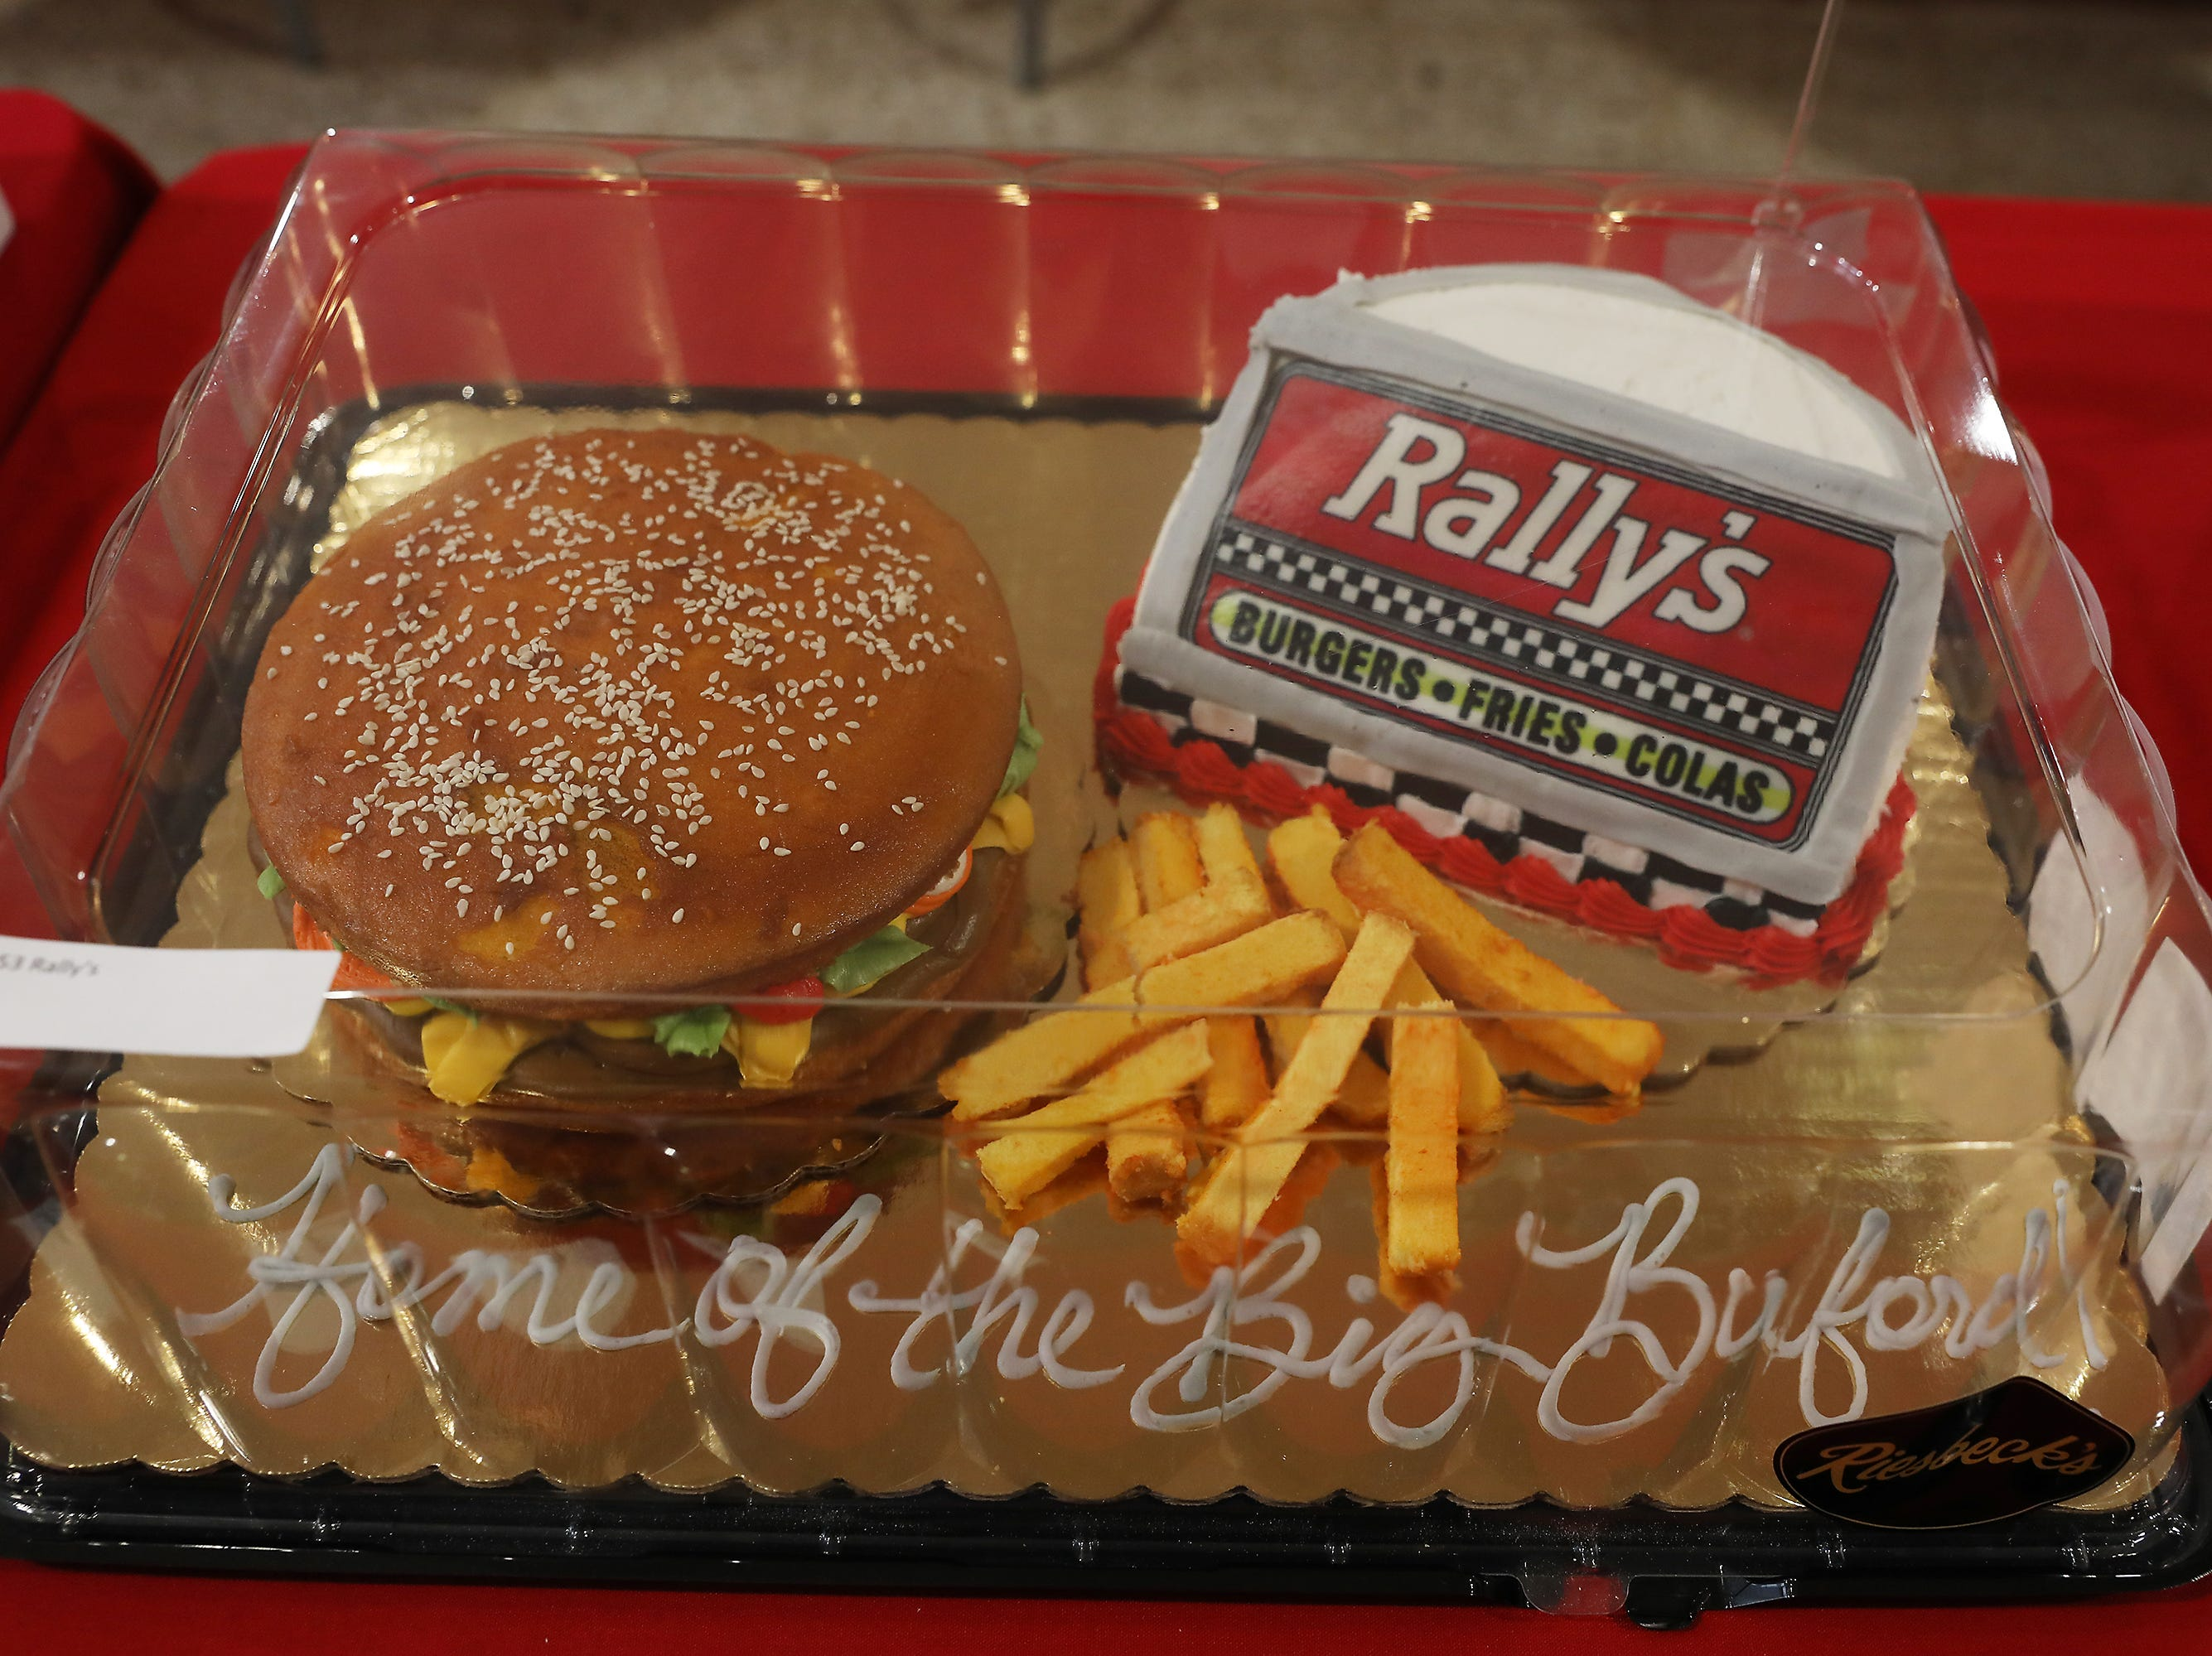 10 A.M. Friday cake 253 Rally's - 12 combos; $100